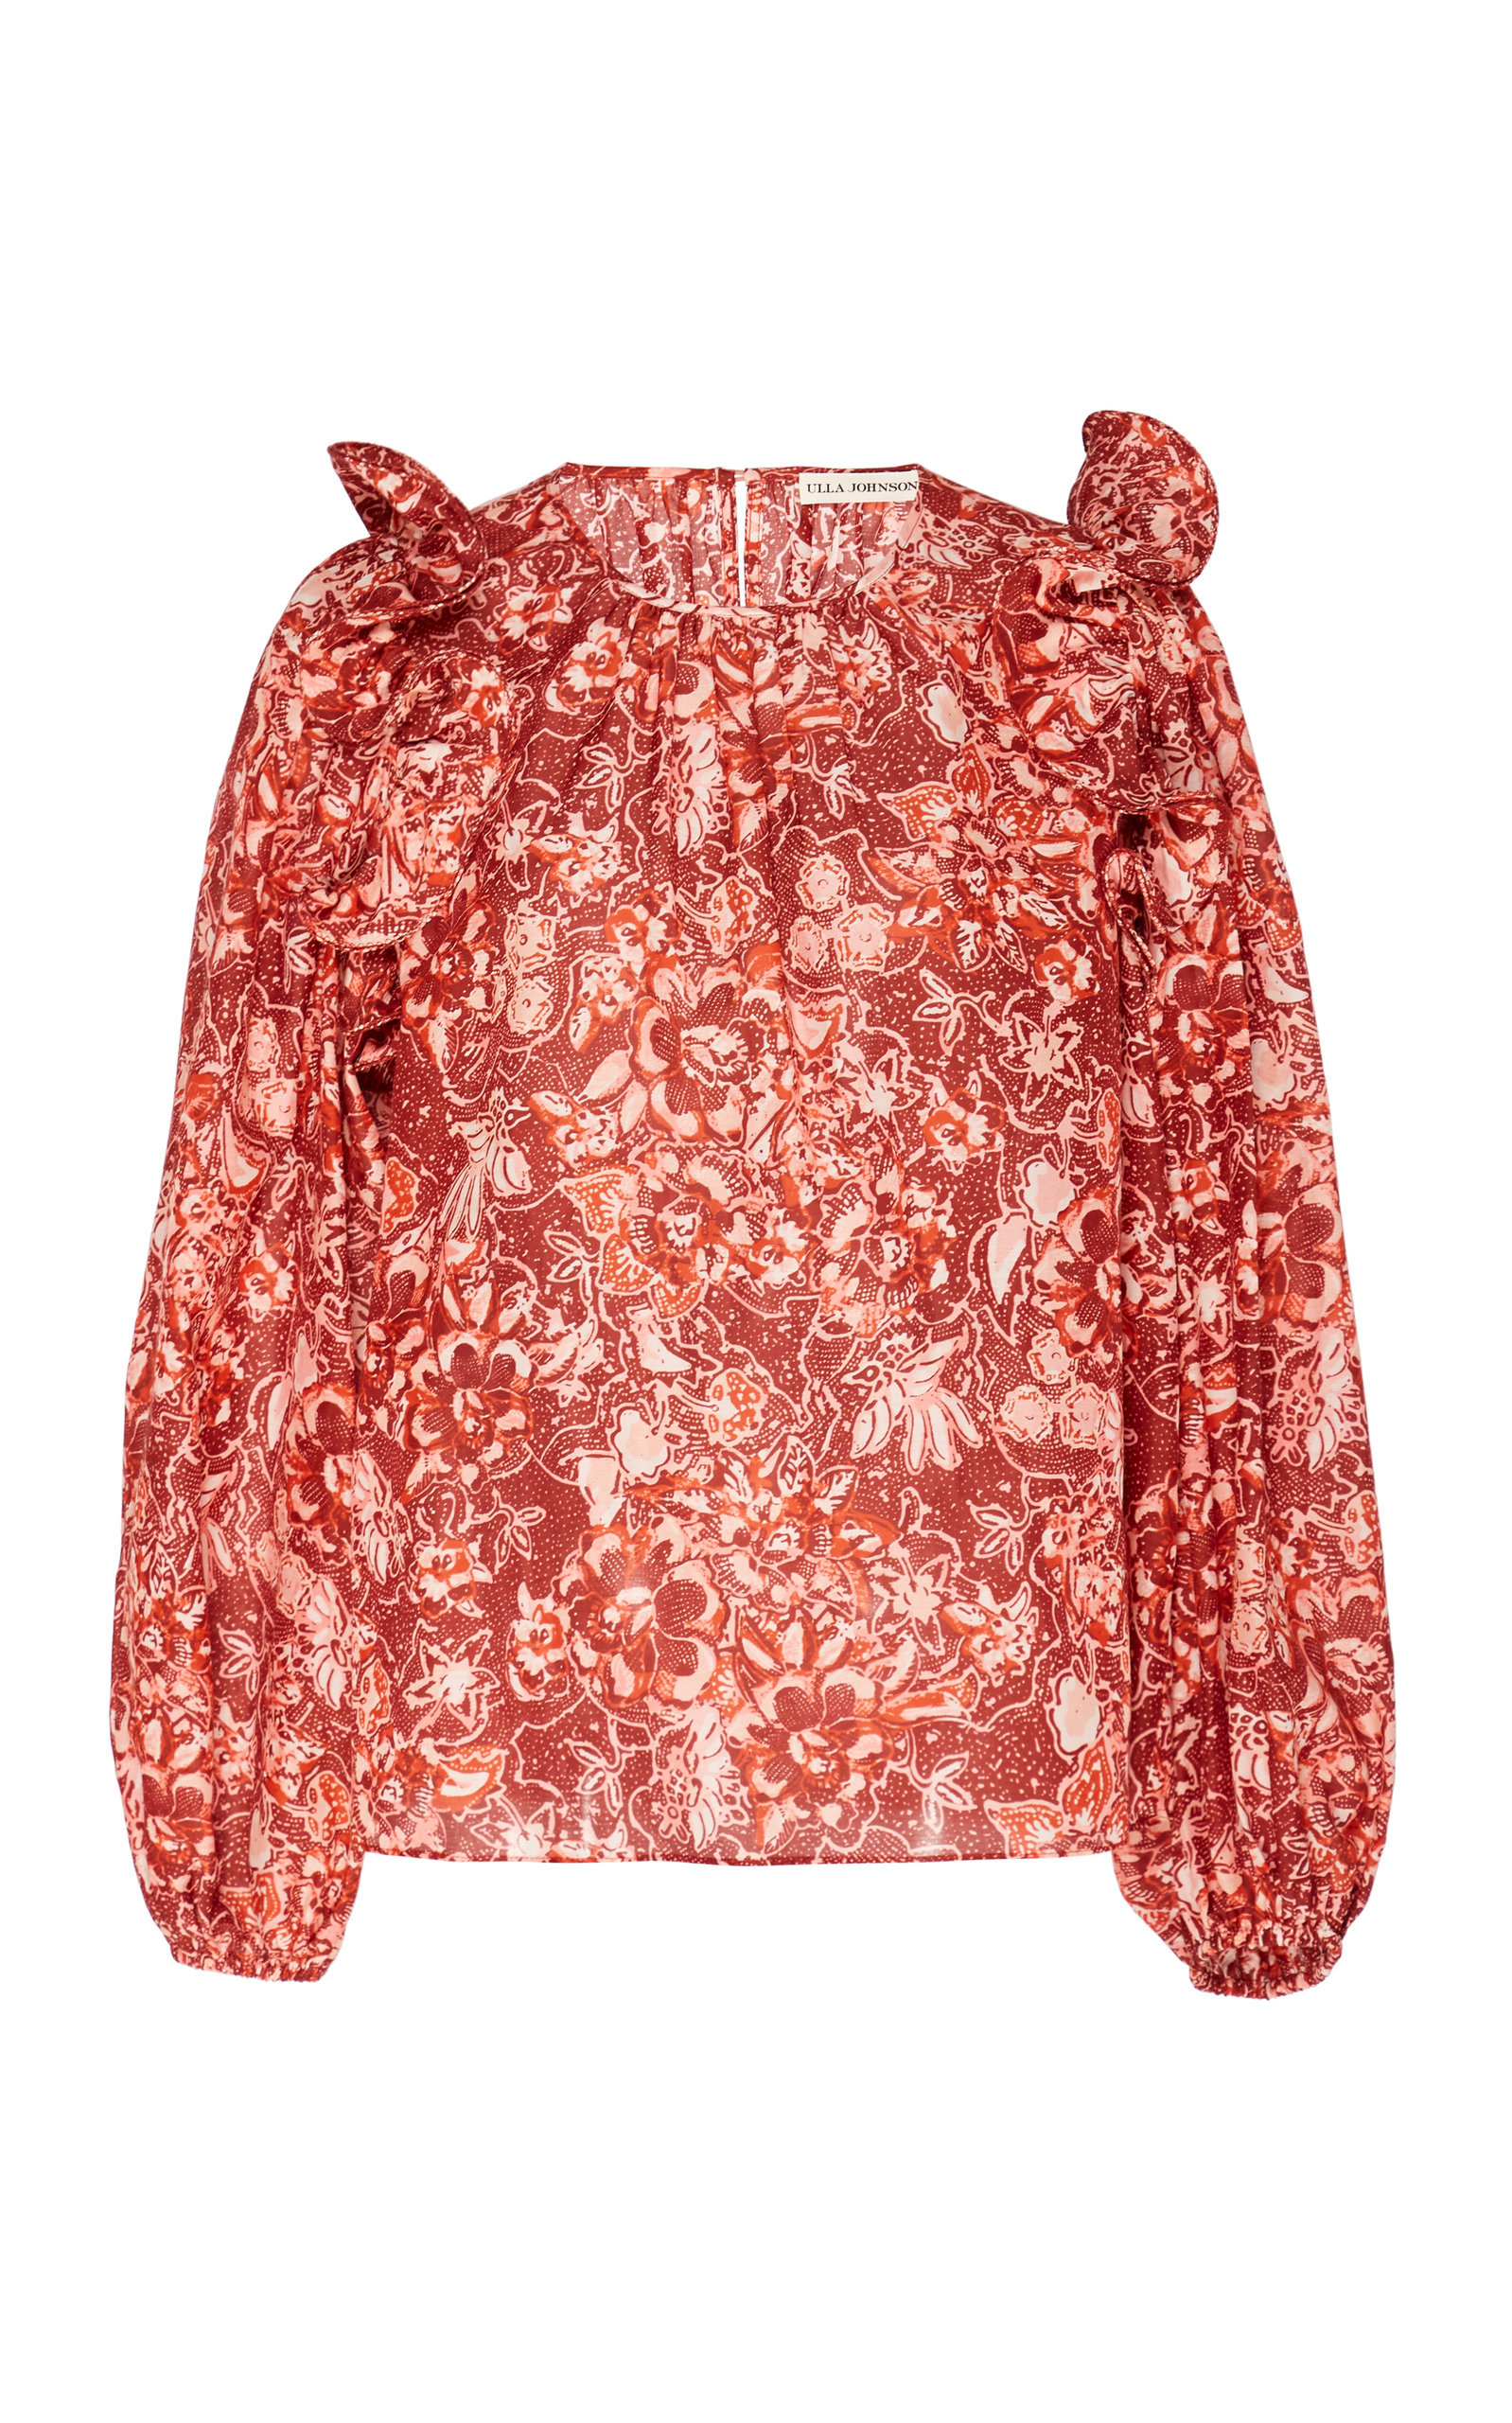 10 Holiday Tops to Buy Now   Rhyme & Reason